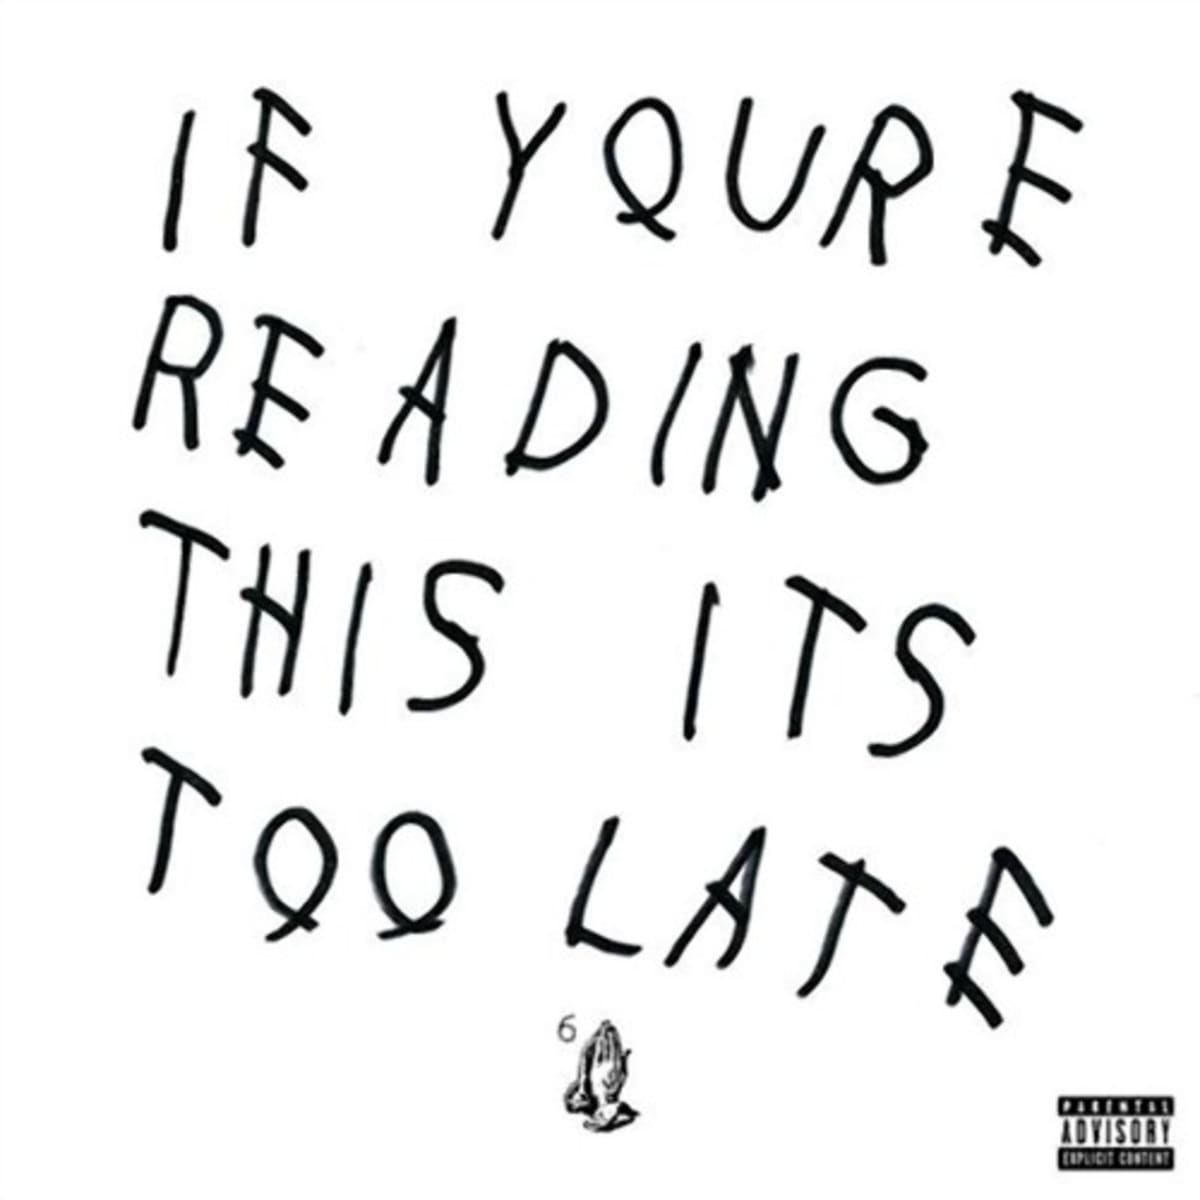 1200x1200 Here's An Awesome Mix Featuring The Samples Used On Drake's If